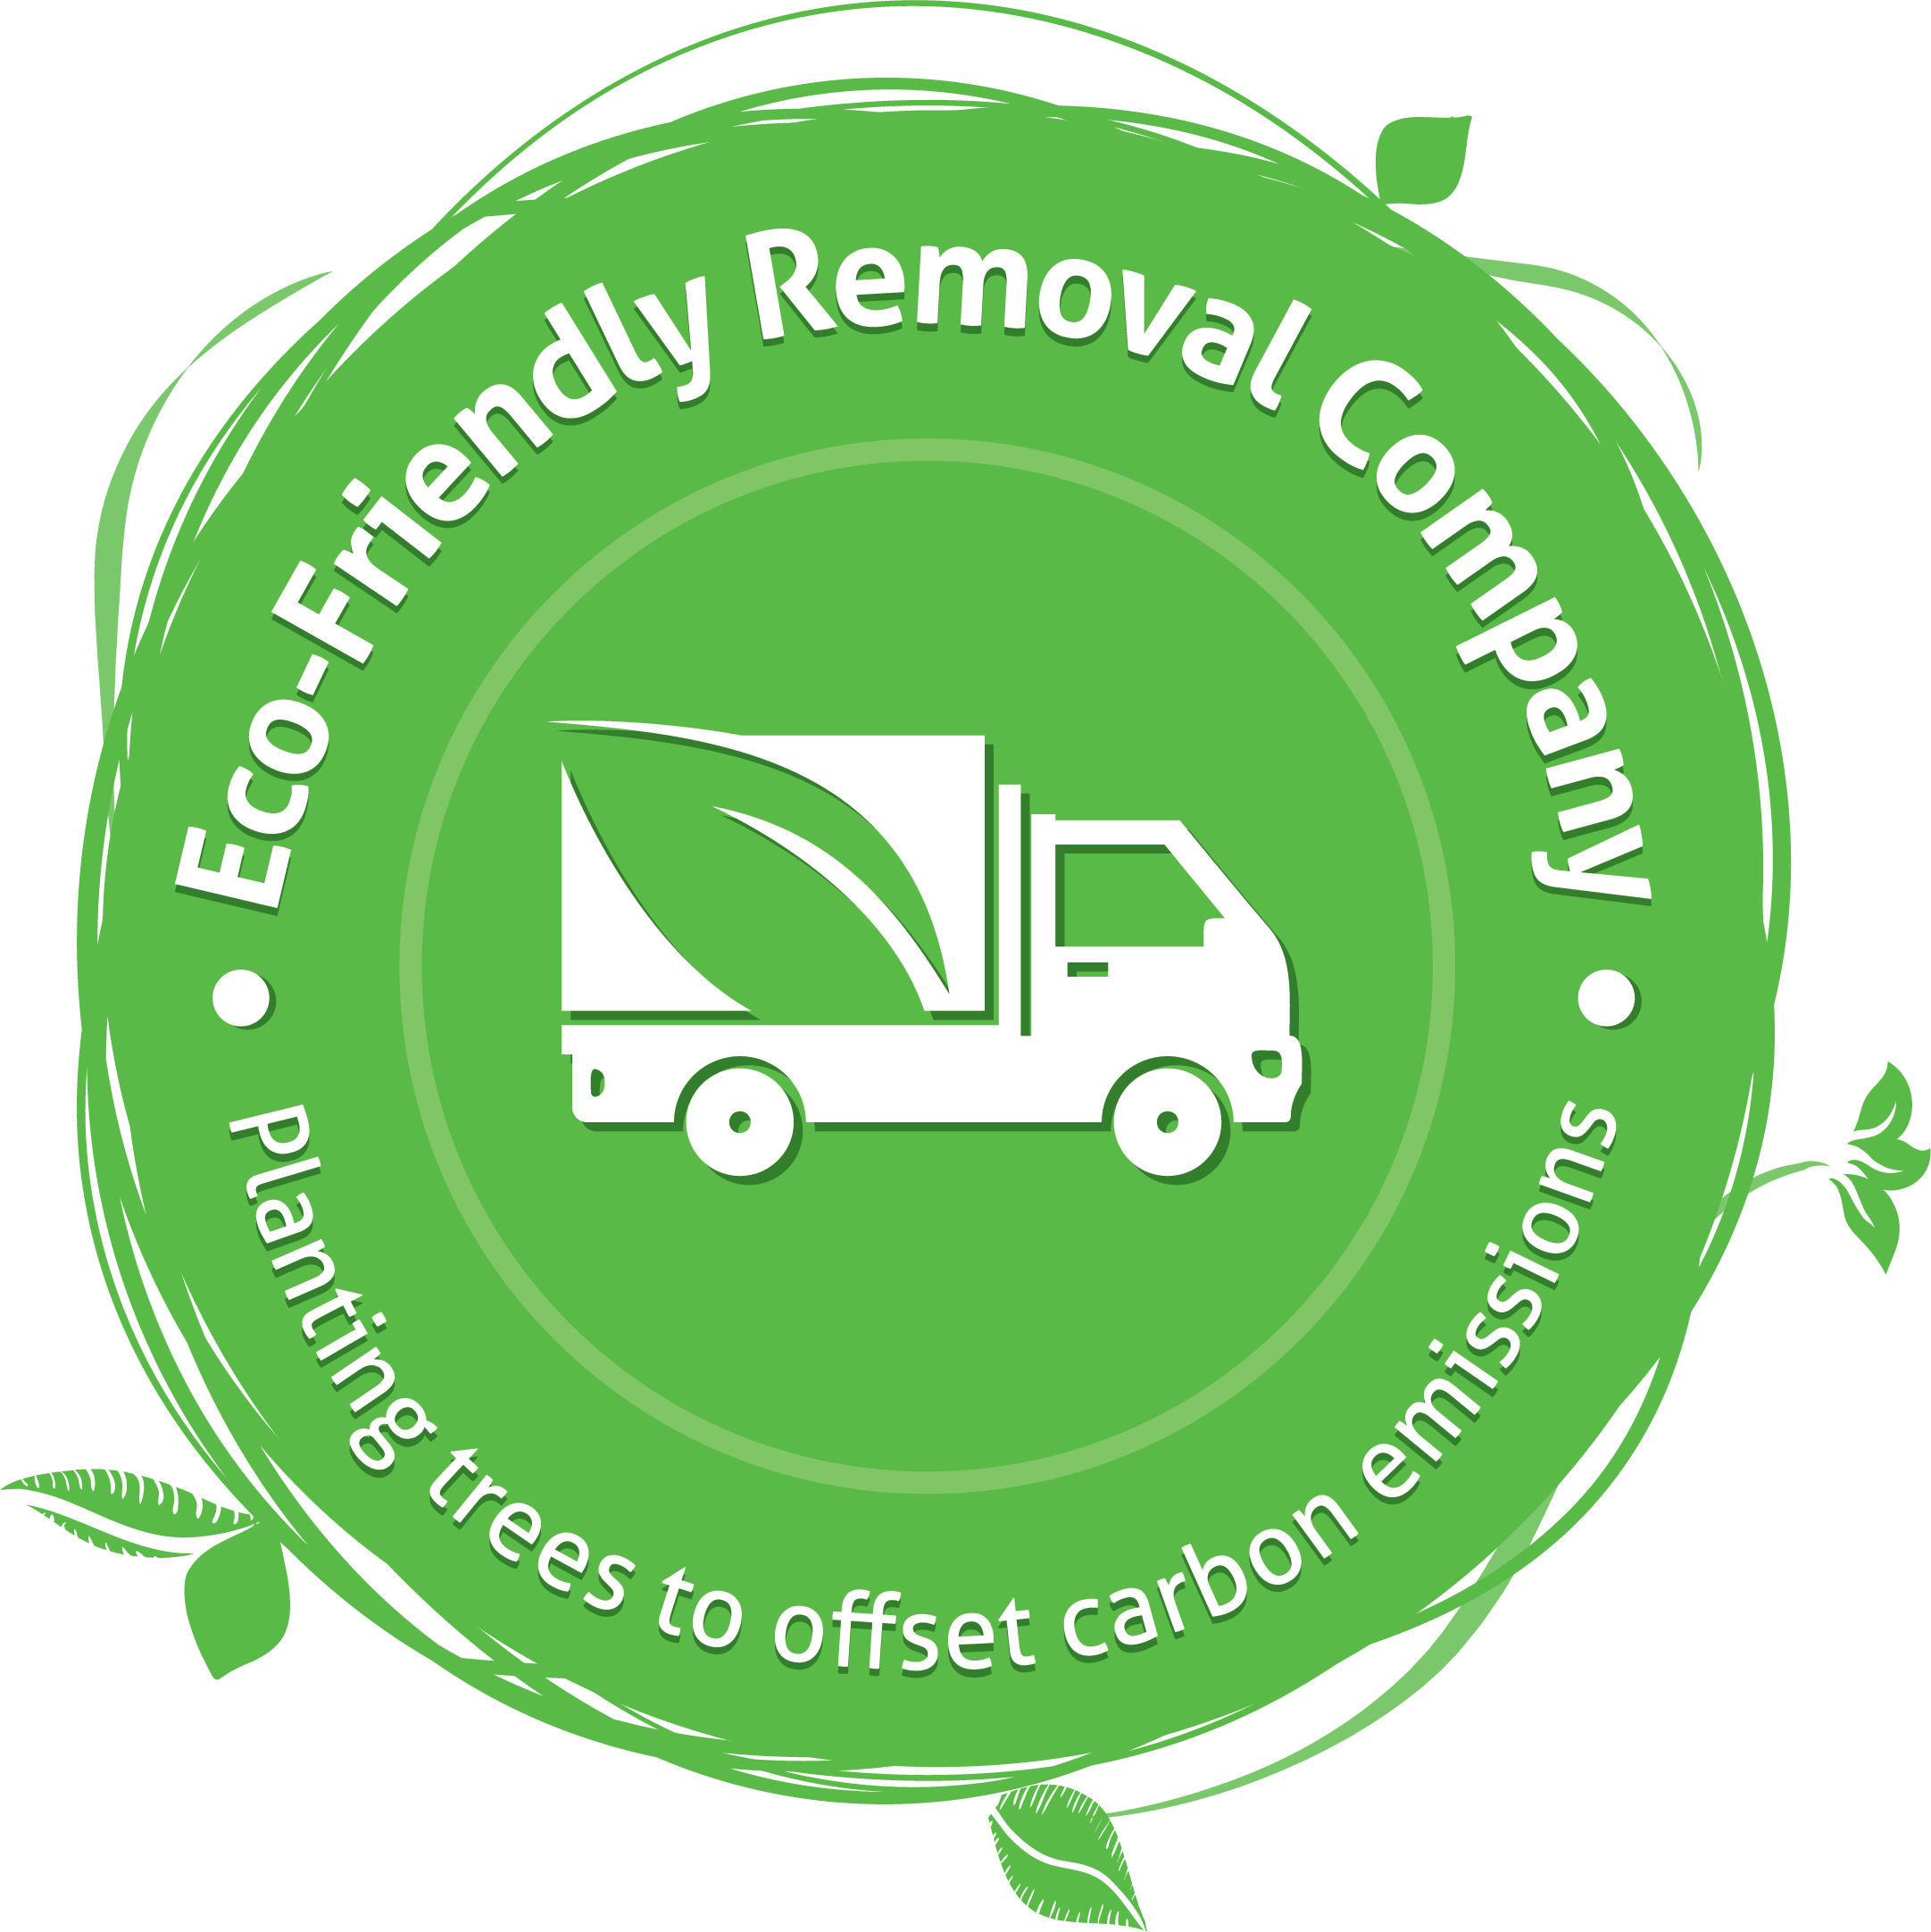 eco friendly removals